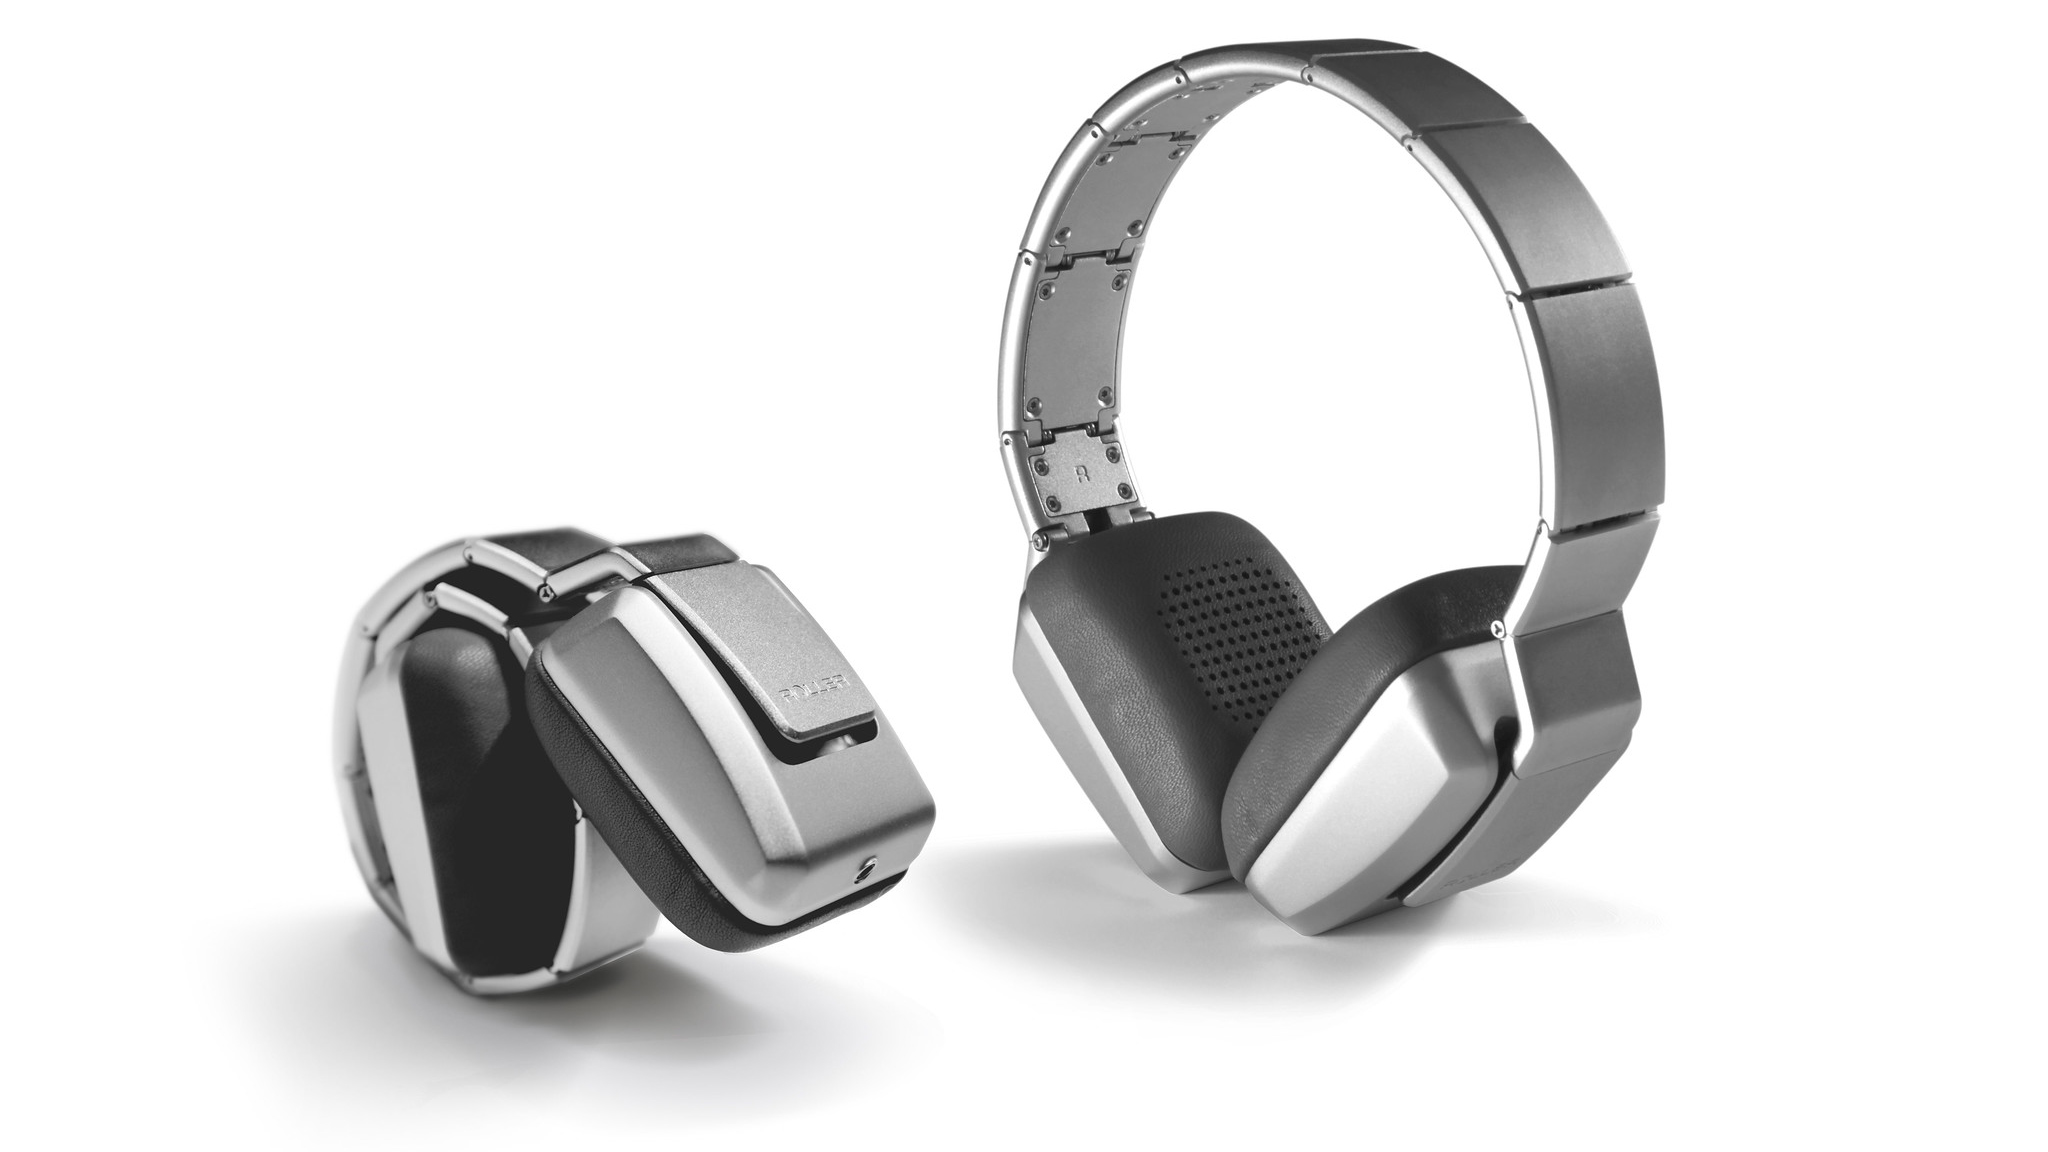 These Swiss watch-inspired headphones could last you a lifetime